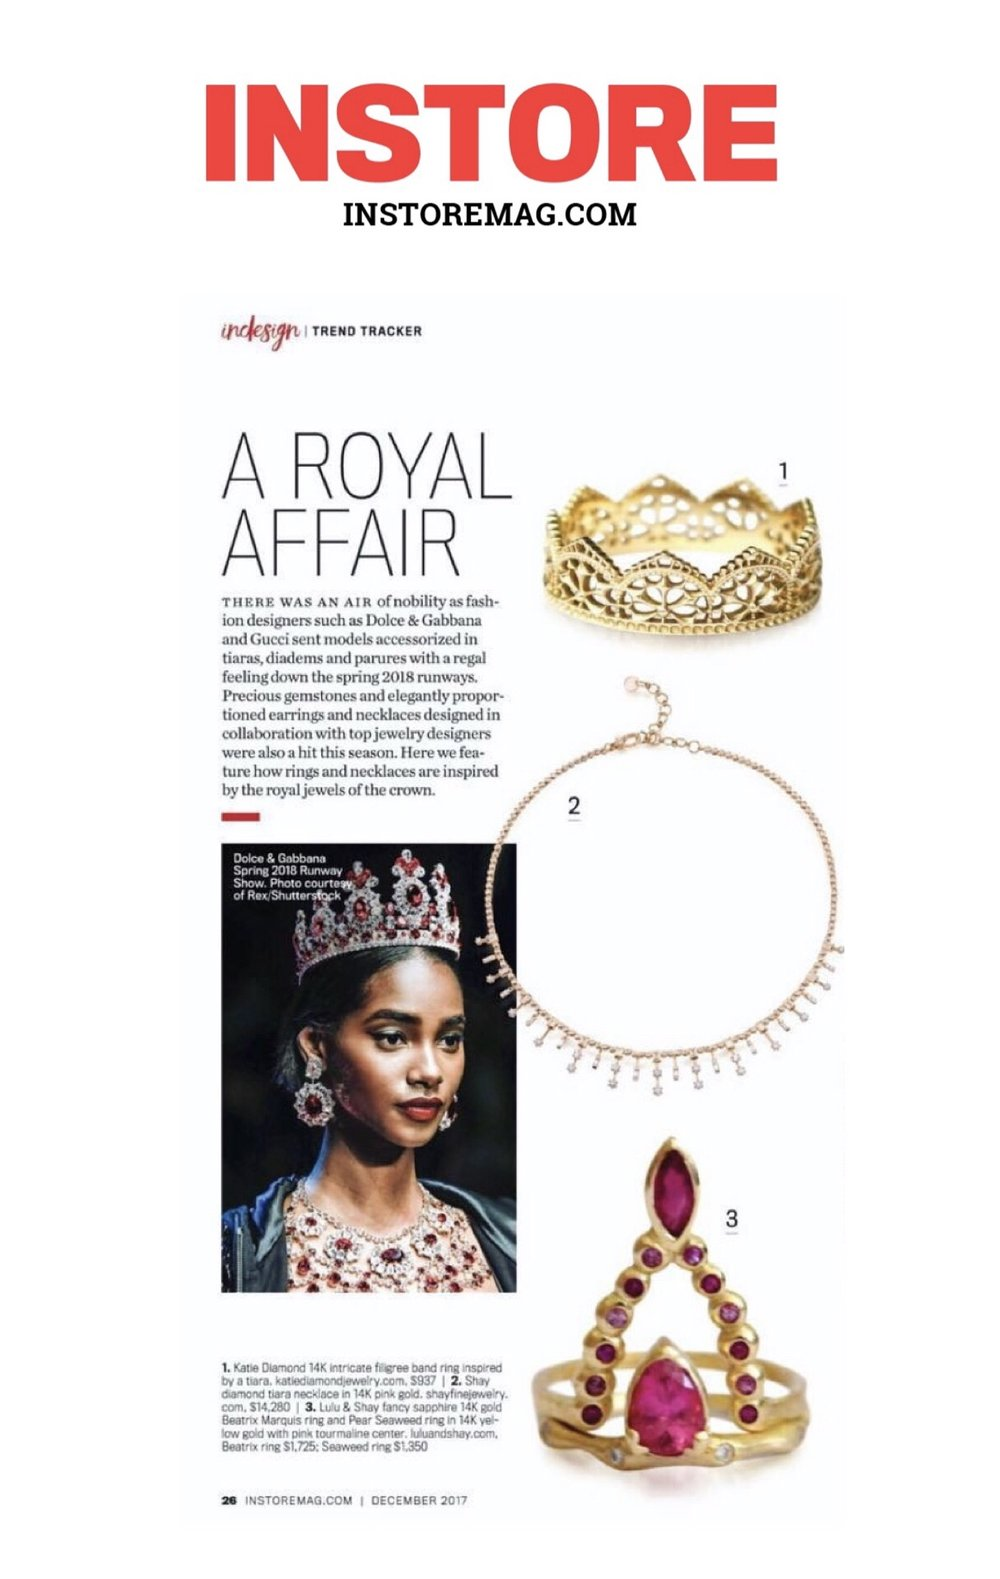 Instore Magazine A Royal Affair